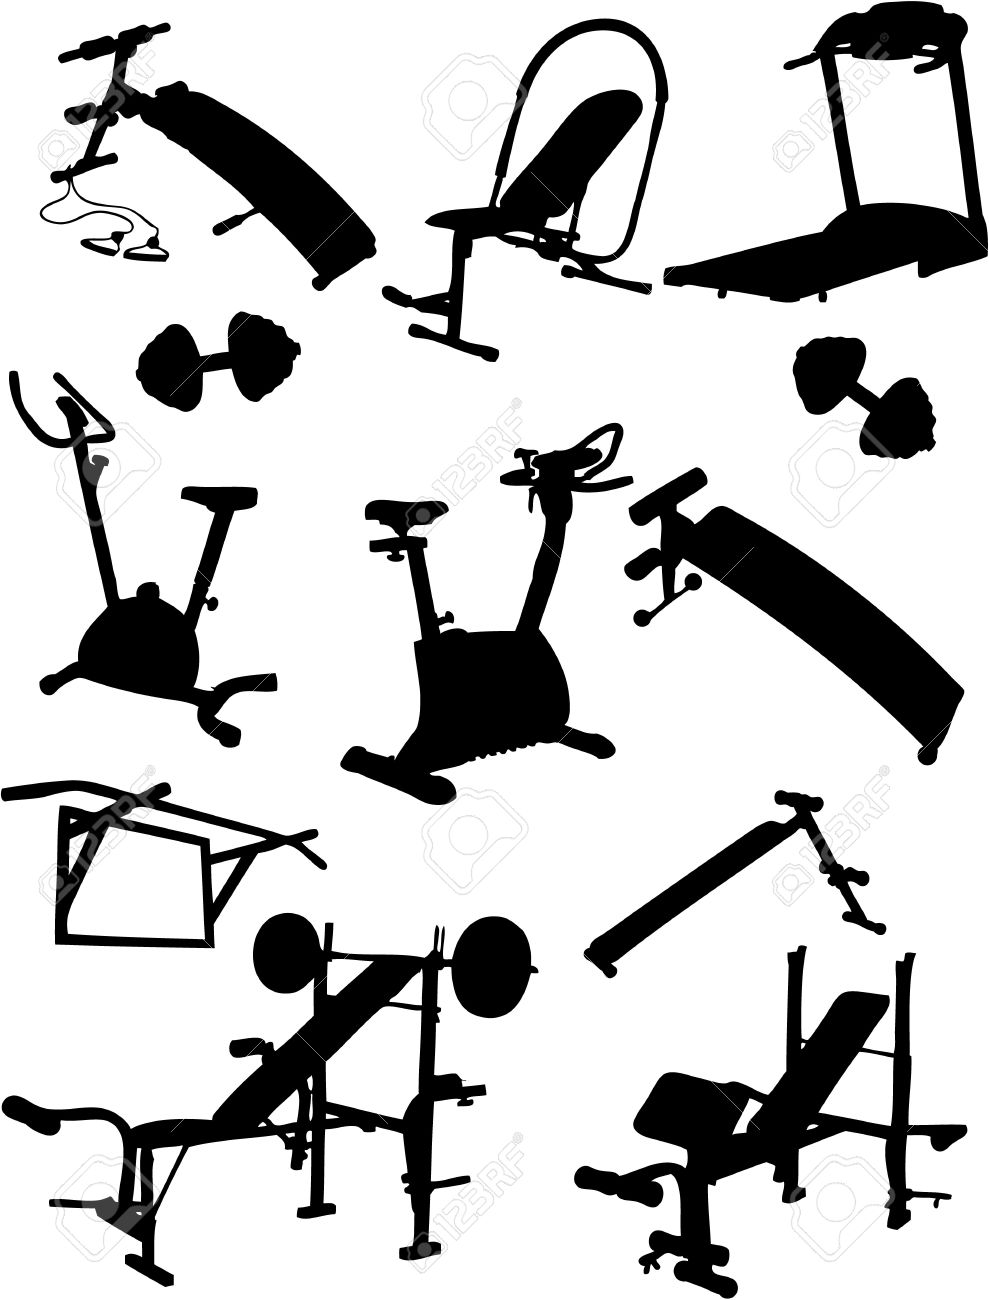 Work out equipment clipart graphic free library Clipart gym equipment - ClipartFest graphic free library